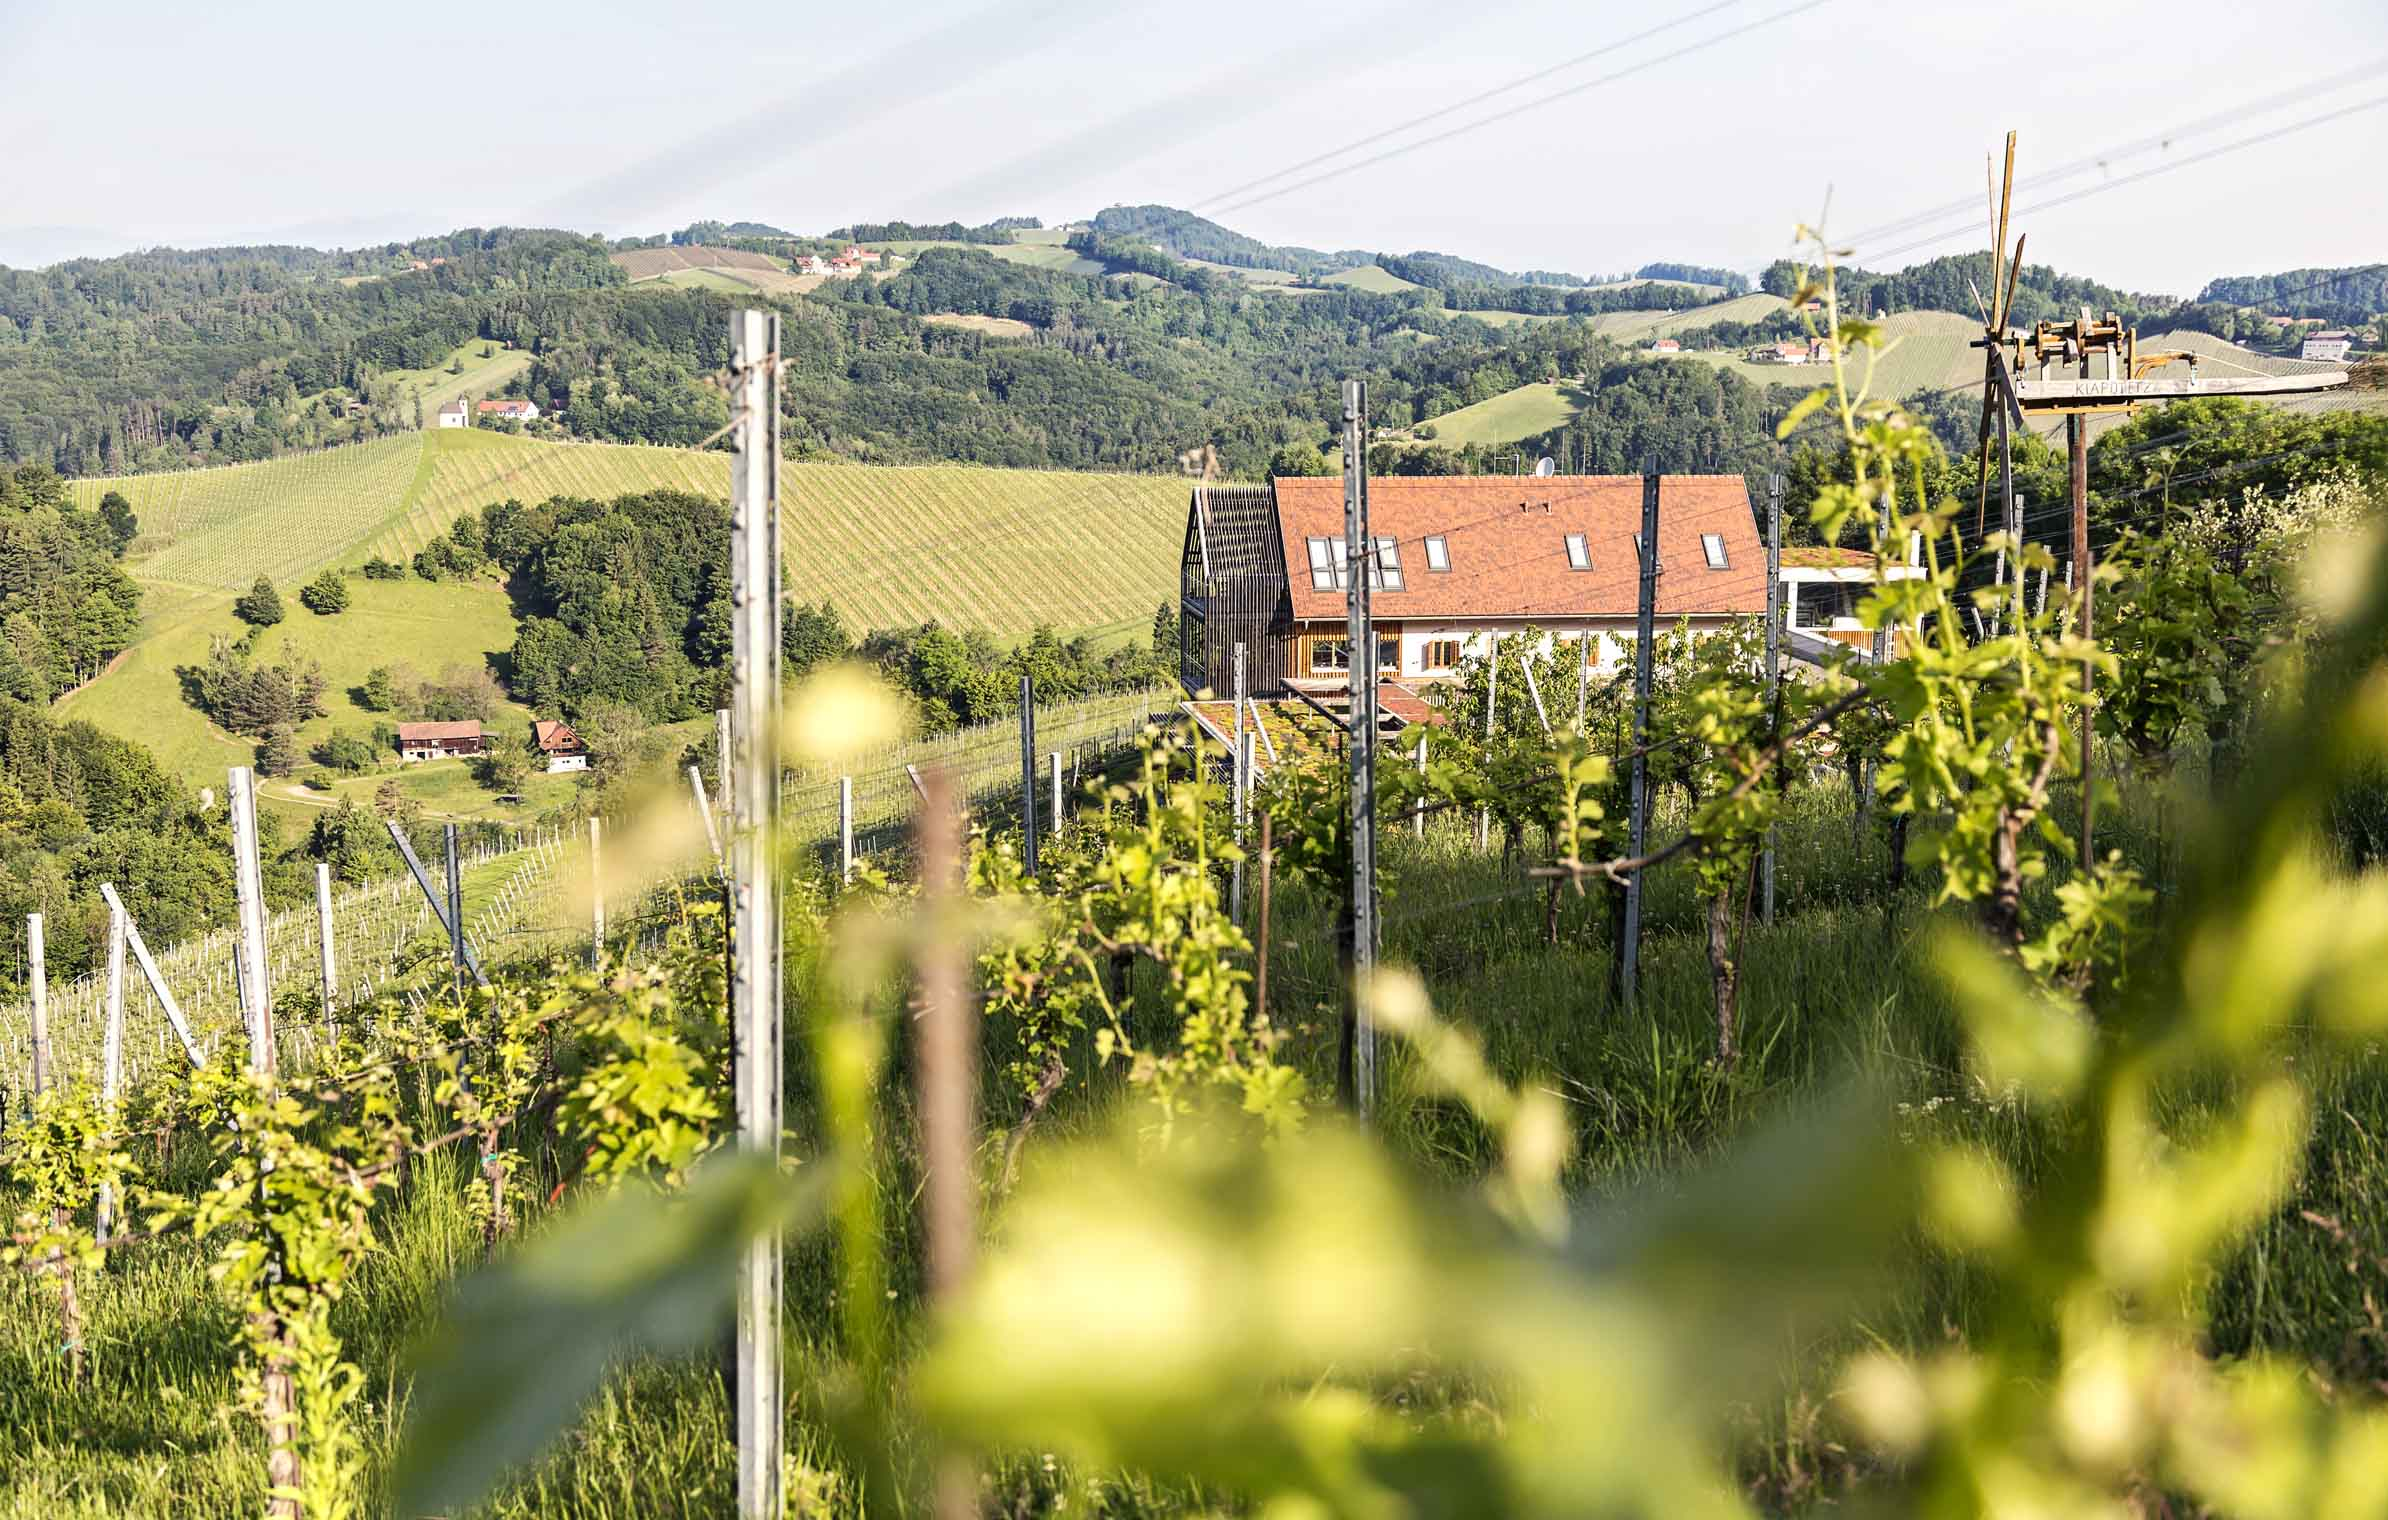 goedwinemakers_wineyard_vines_house_styria_weinstrasse